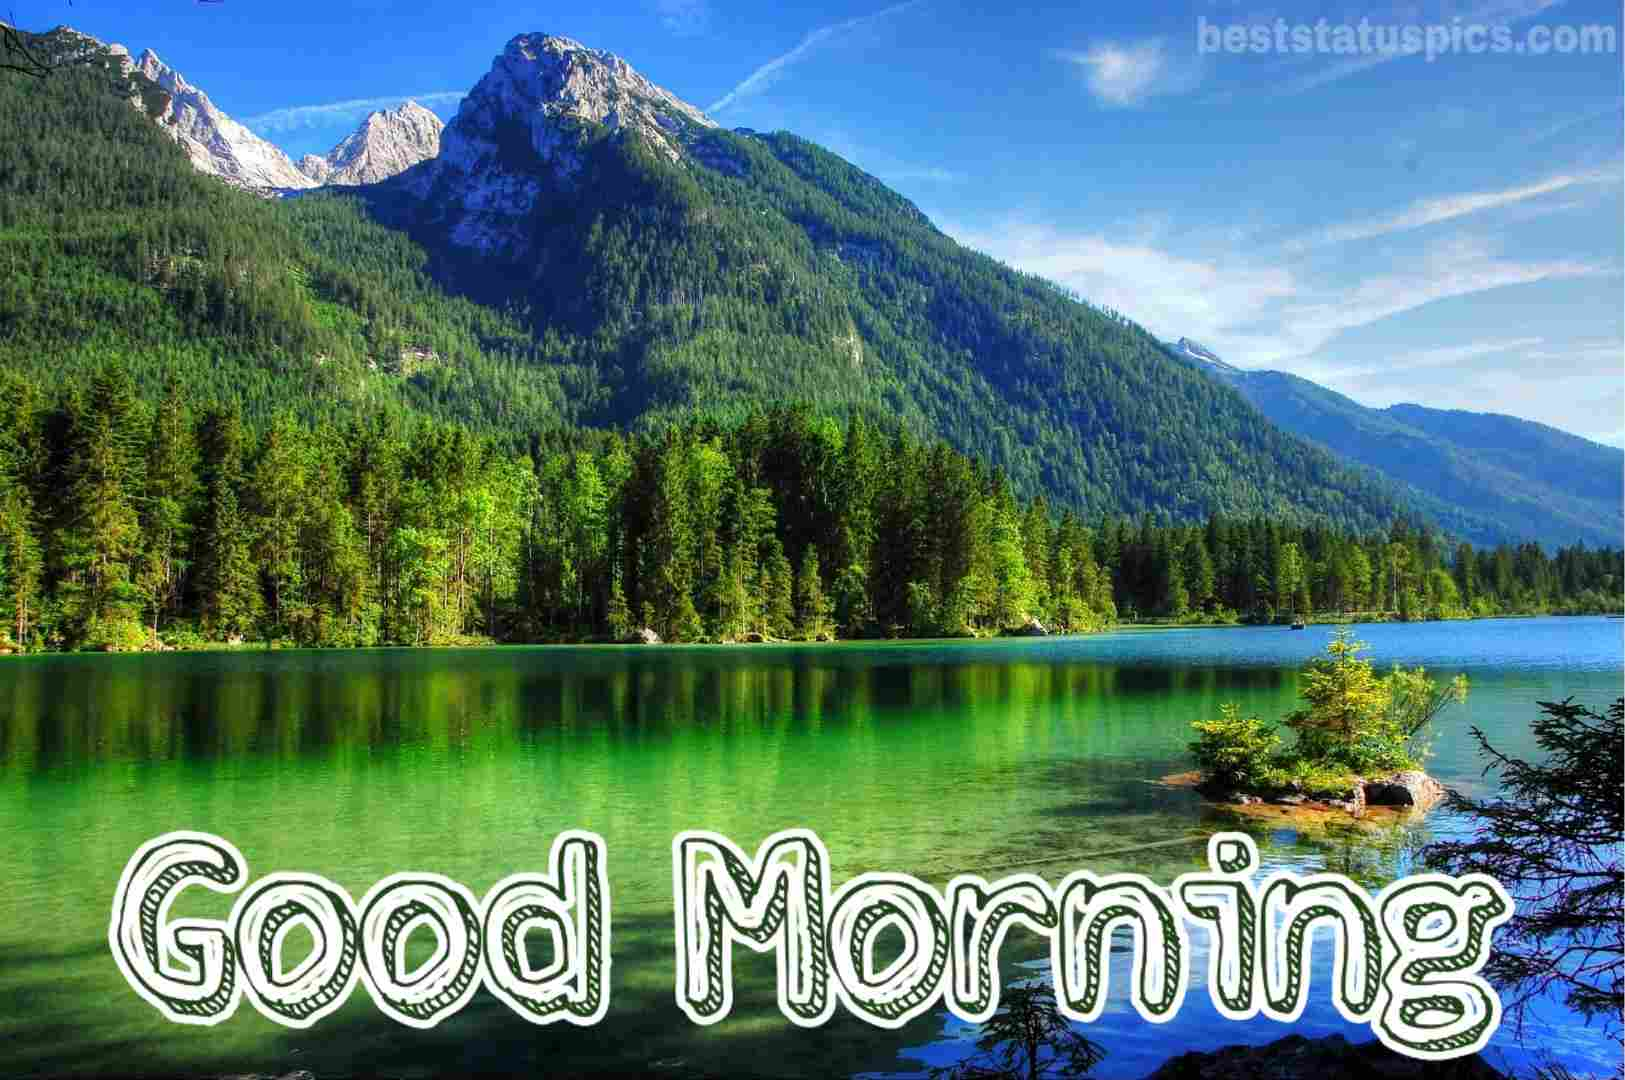 Beautiful Good Morning Mountain Hd Images 2020 Best Status Pics